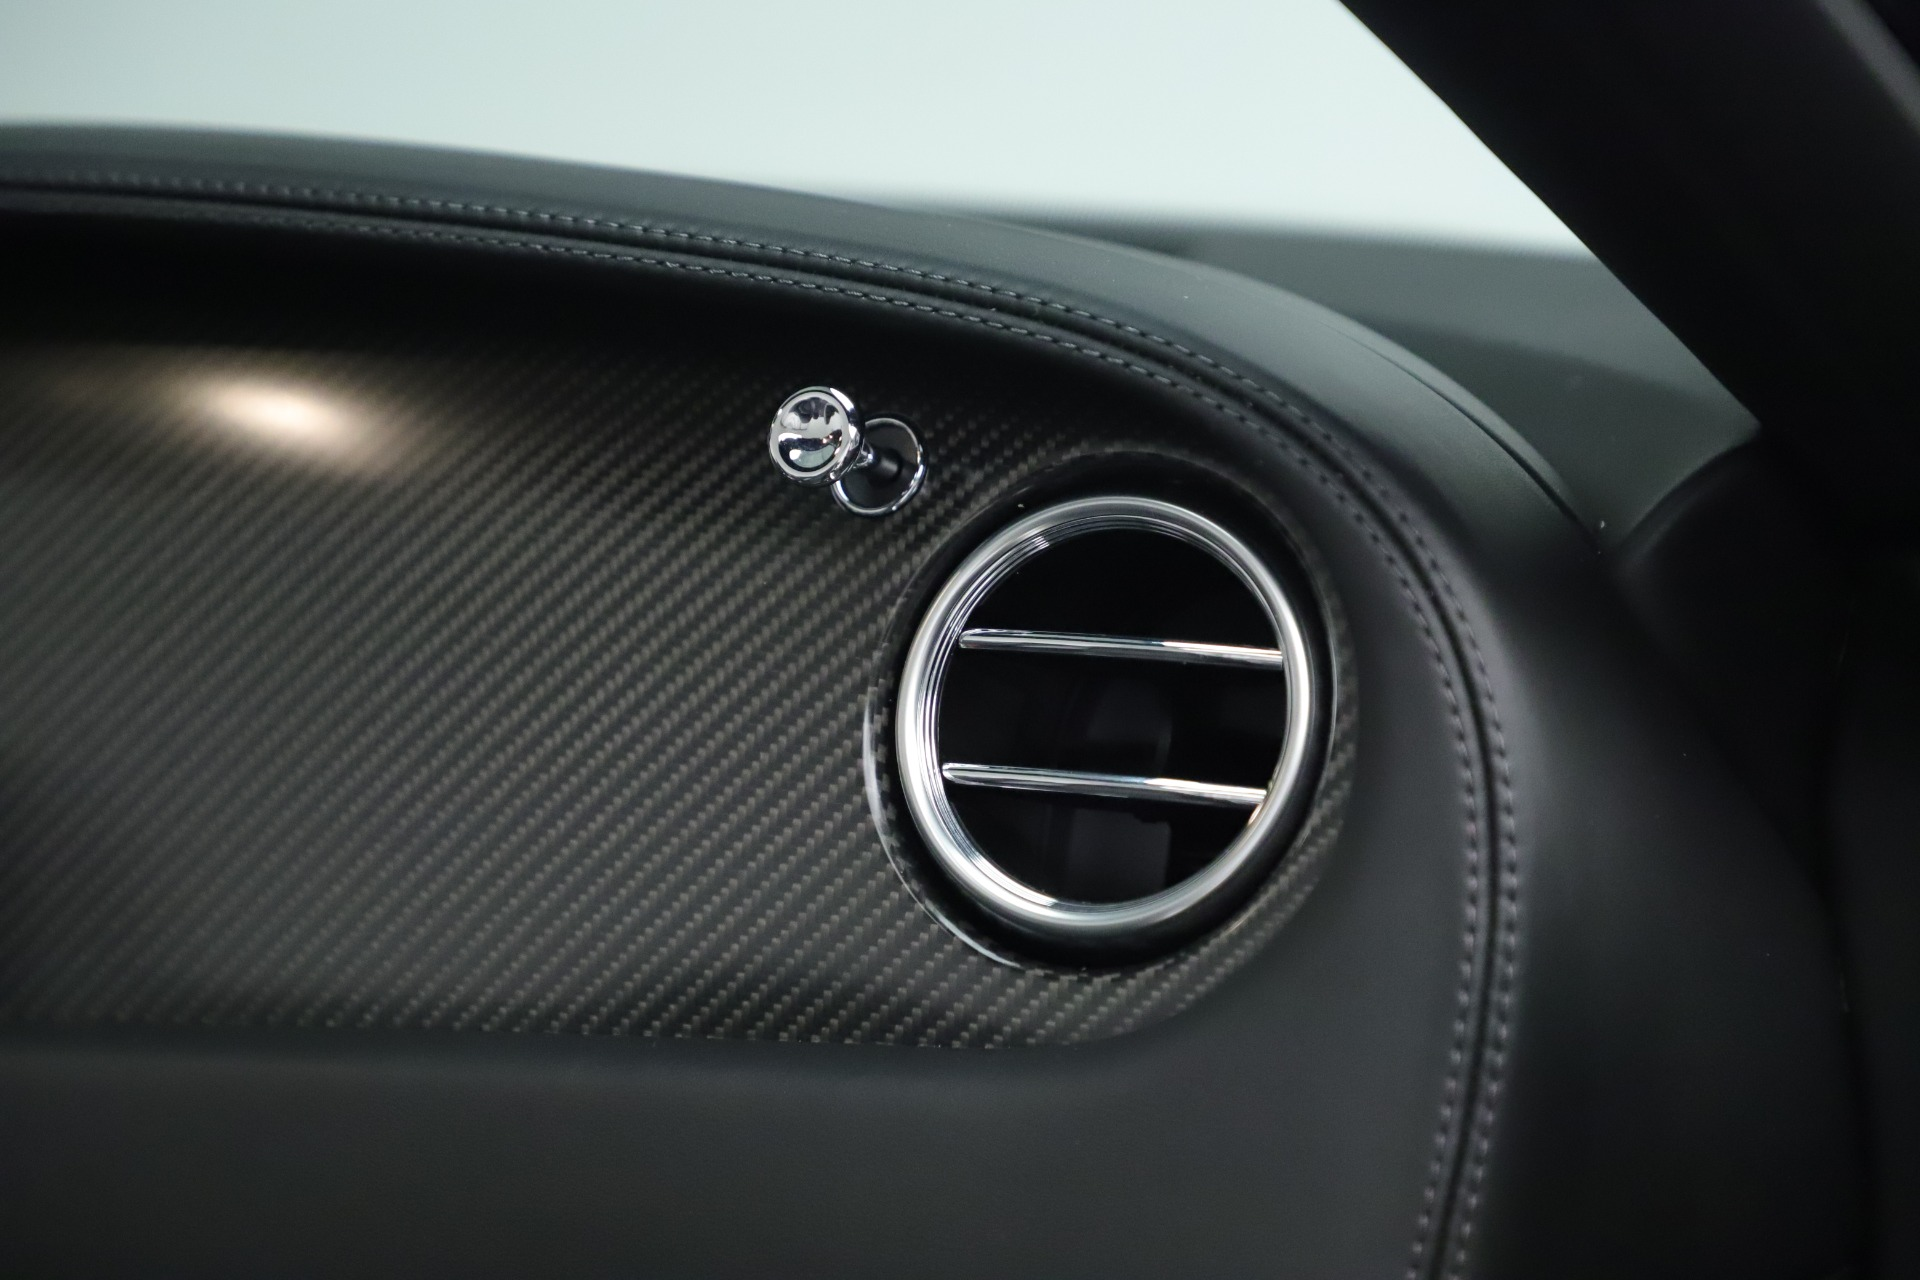 Used 2012 Bentley Continental GT Supersports For Sale In Westport, CT 3214_p32